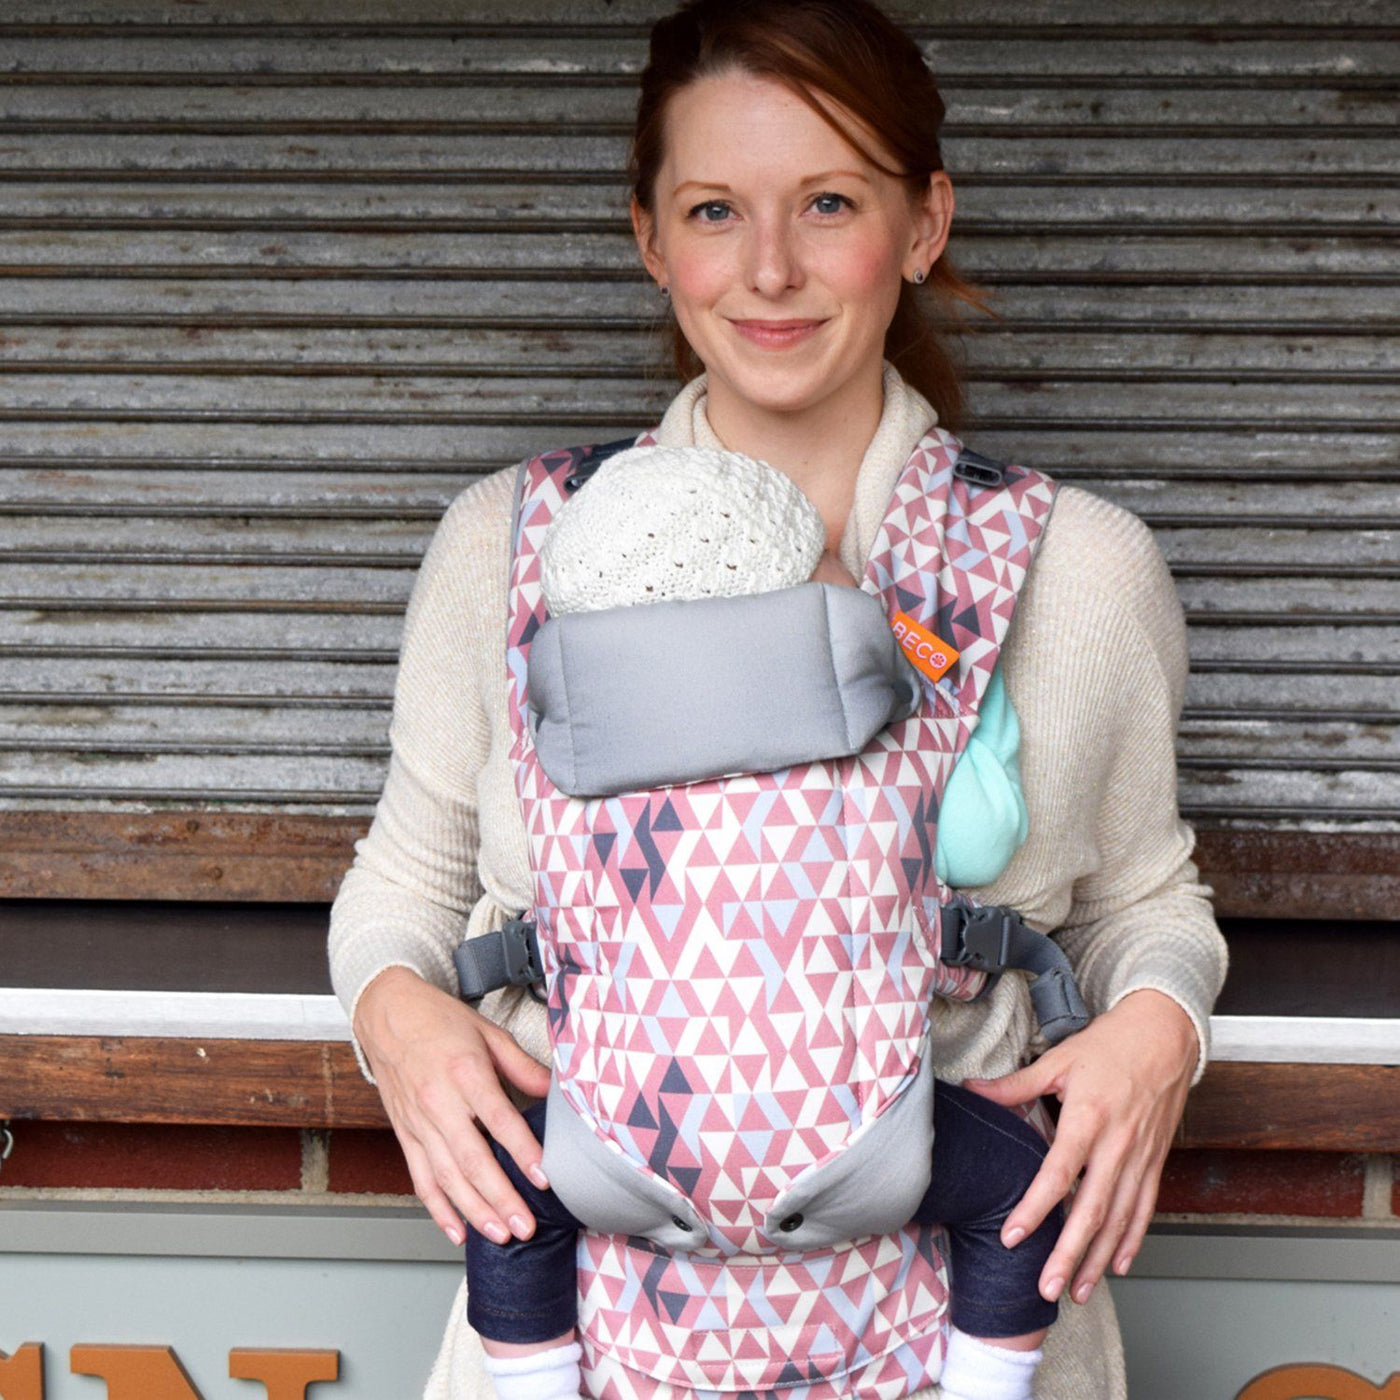 a3d6299b1ec Beco Gemini Baby Carrier - best baby carrier for dads and petite moms.